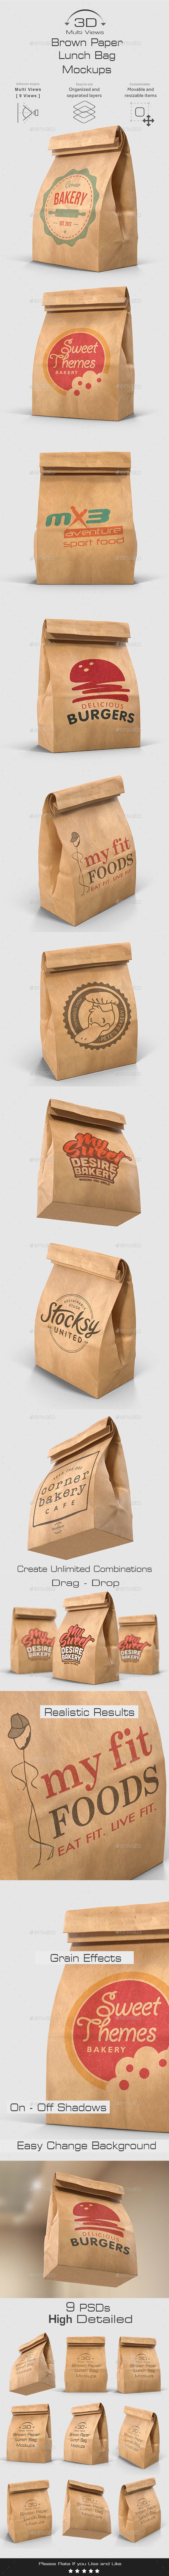 Brown Paper Lunch Bag Mockups  3D Multi Views — Photoshop PSD #burger #container • Available here → https://graphicriver.net/item/brown-paper-lunch-bag-mockups-3d-multi-views/19315982?ref=pxcr